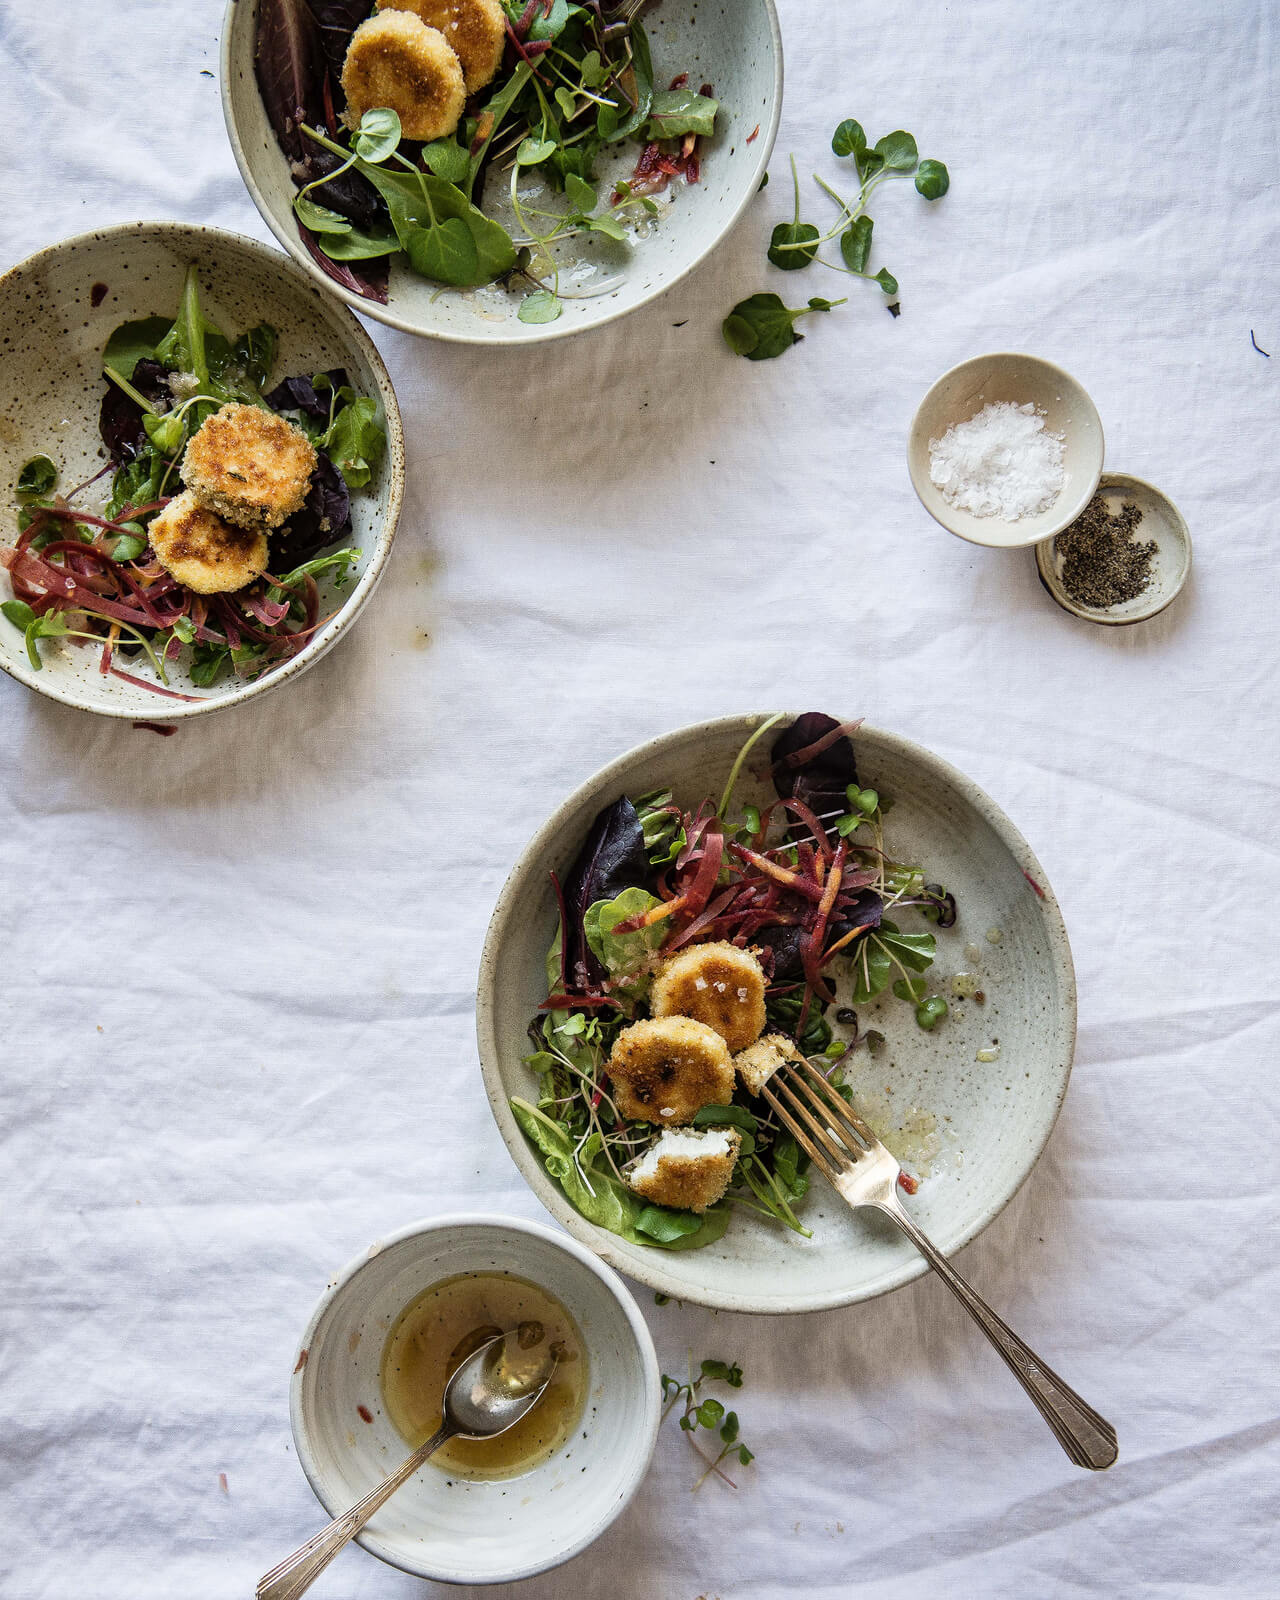 Two Red Bowls' Crispy Goat Cheese Rounds with Shallot Vinaigrette